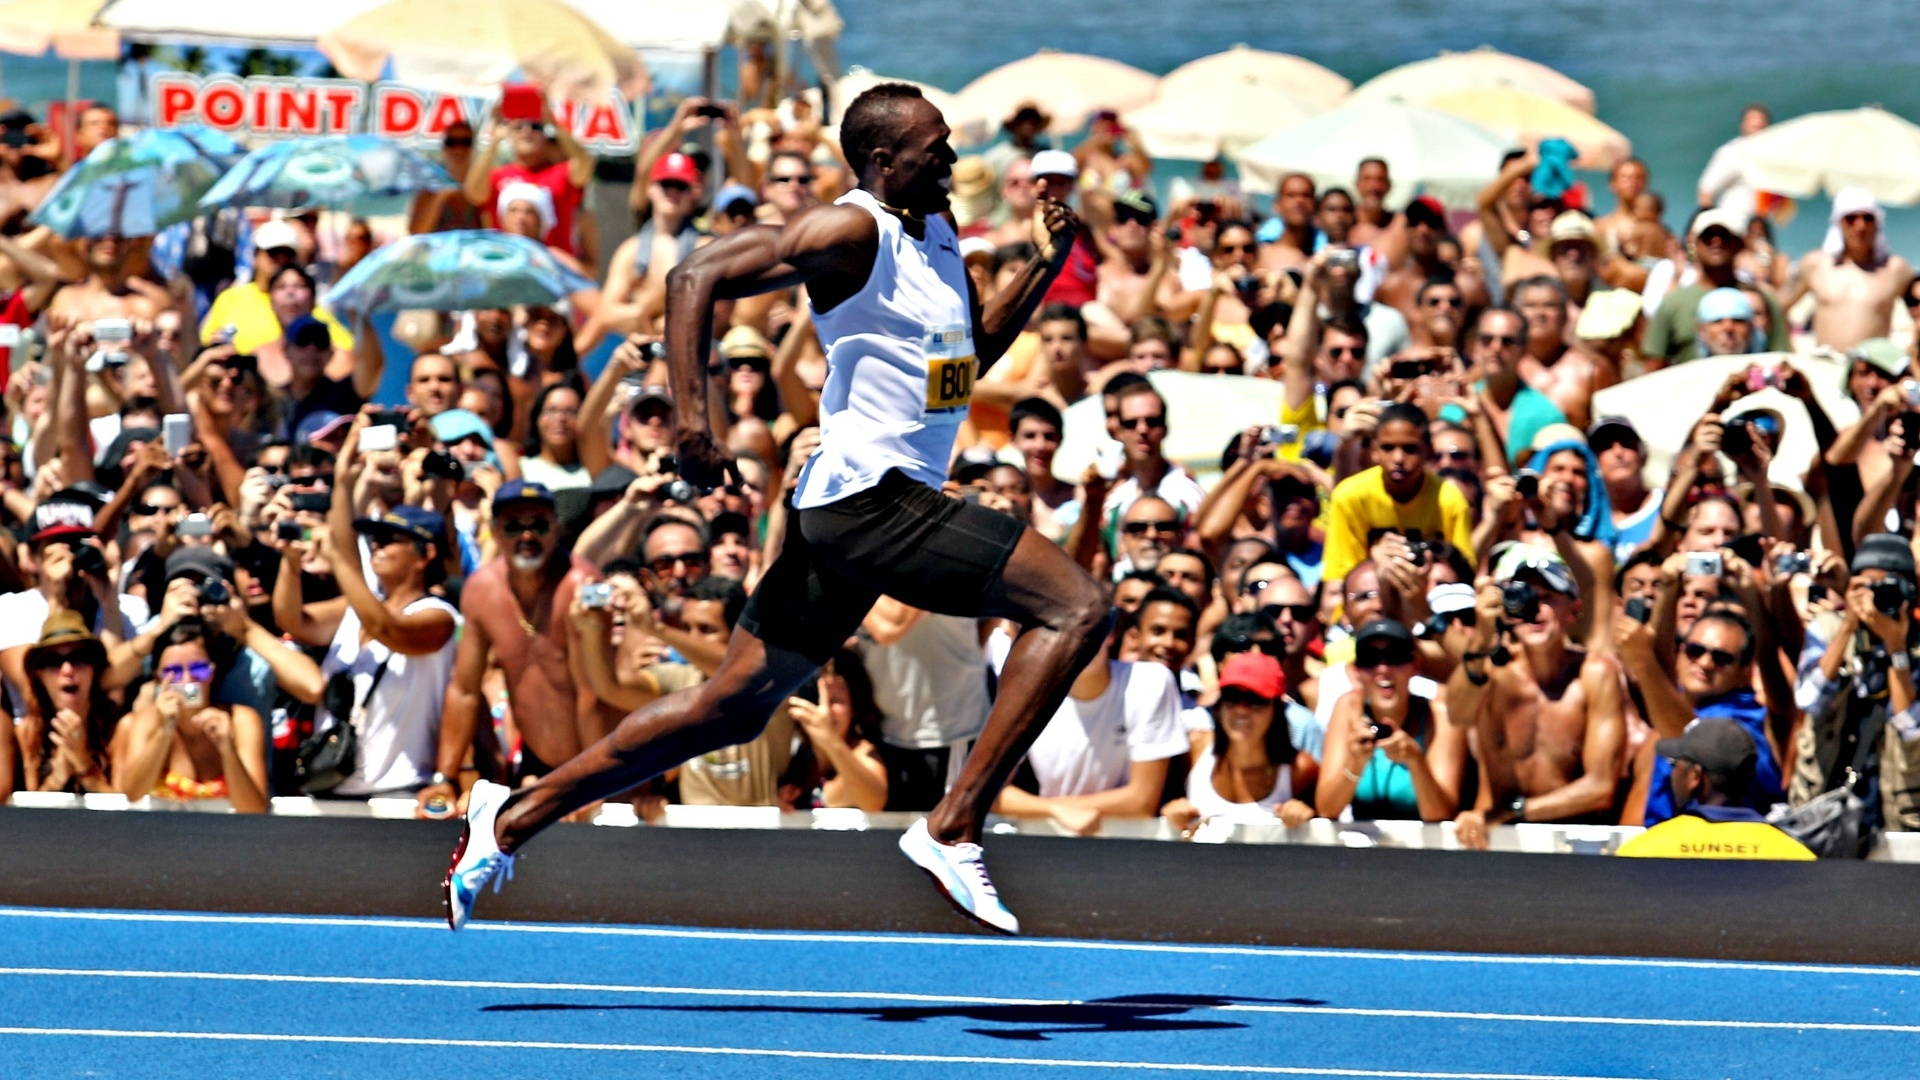 31.mar.2013 - Usain Bolt vence desafio de 150m no Rio de Janeiro, mas sem bater recorde